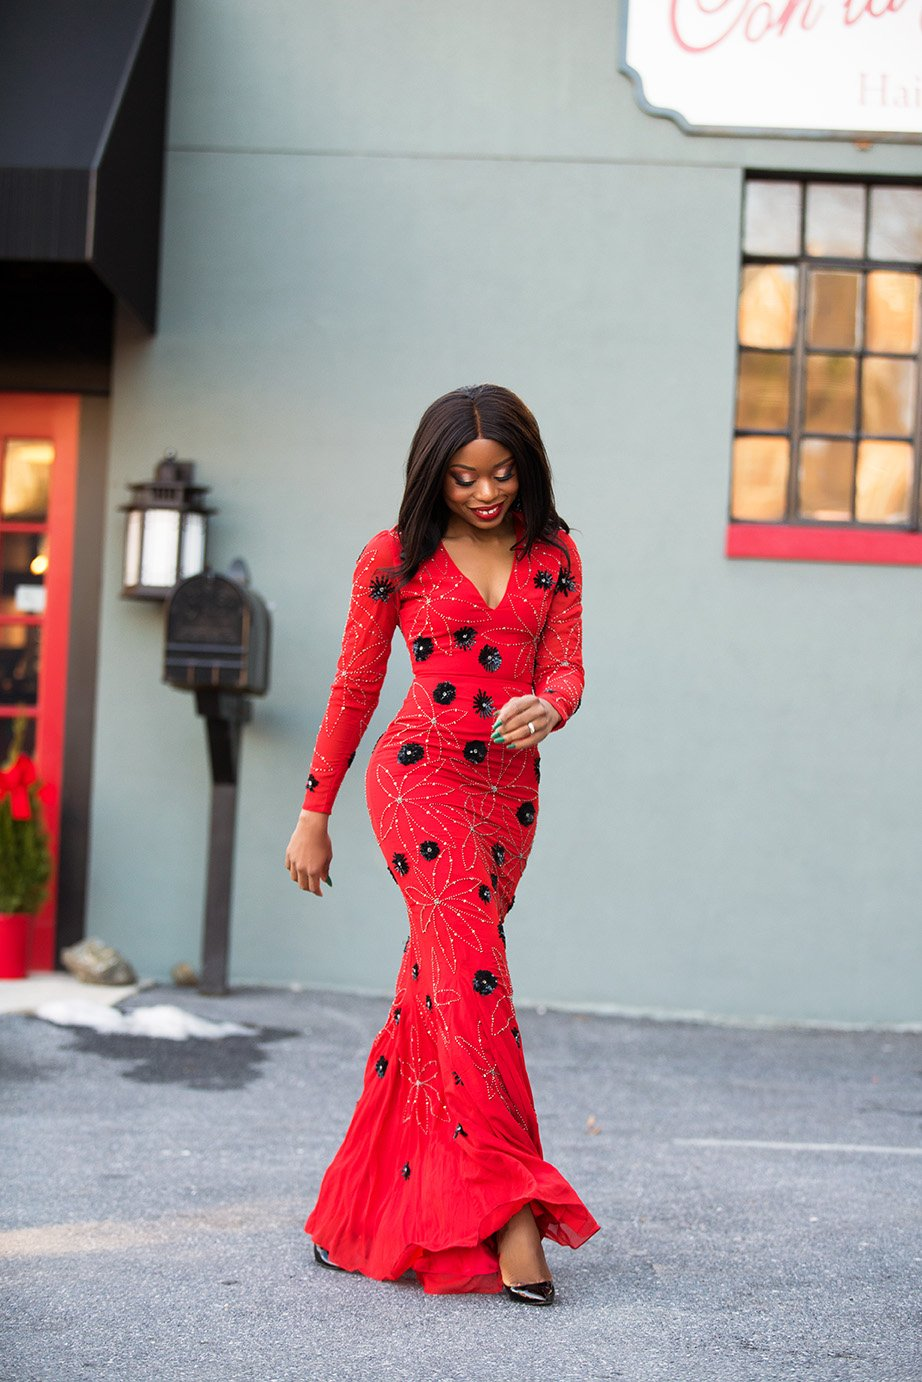 stella-adewunmi-shares-holiday-outfits-for-every-occasion